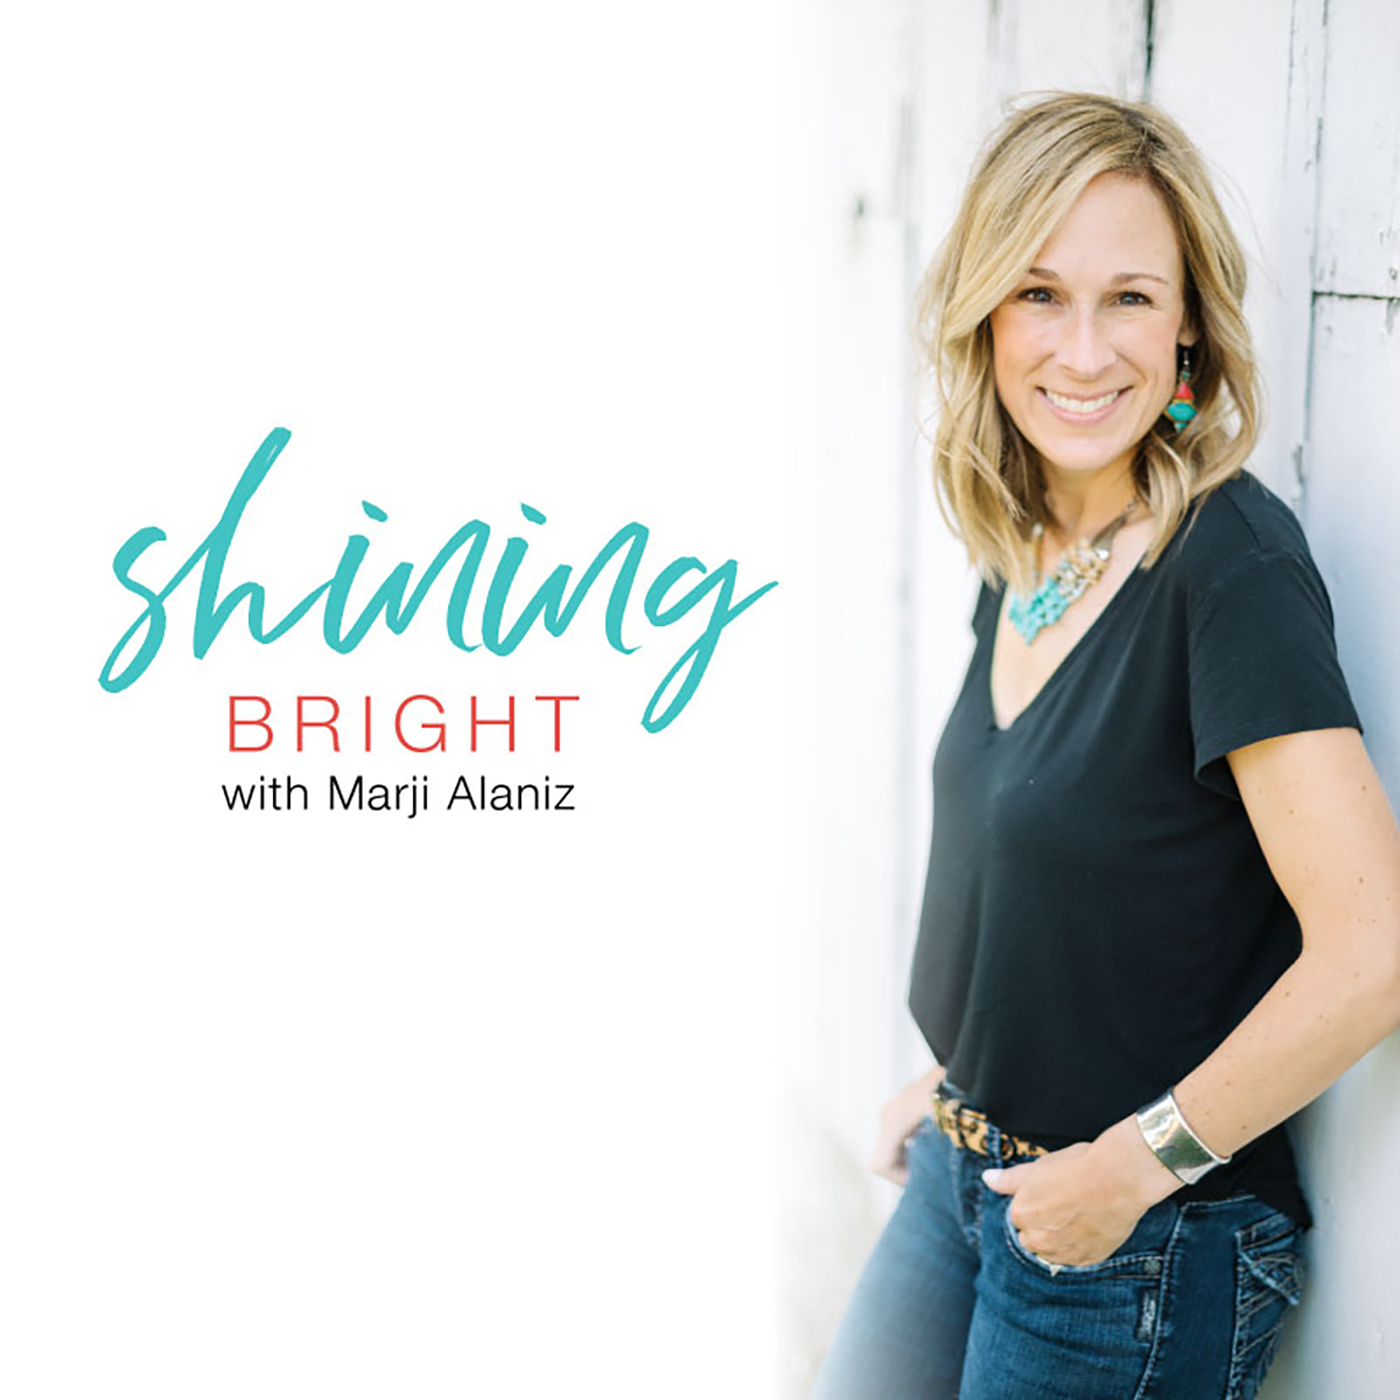 Shining Bright | The FarmHer Podcast show art